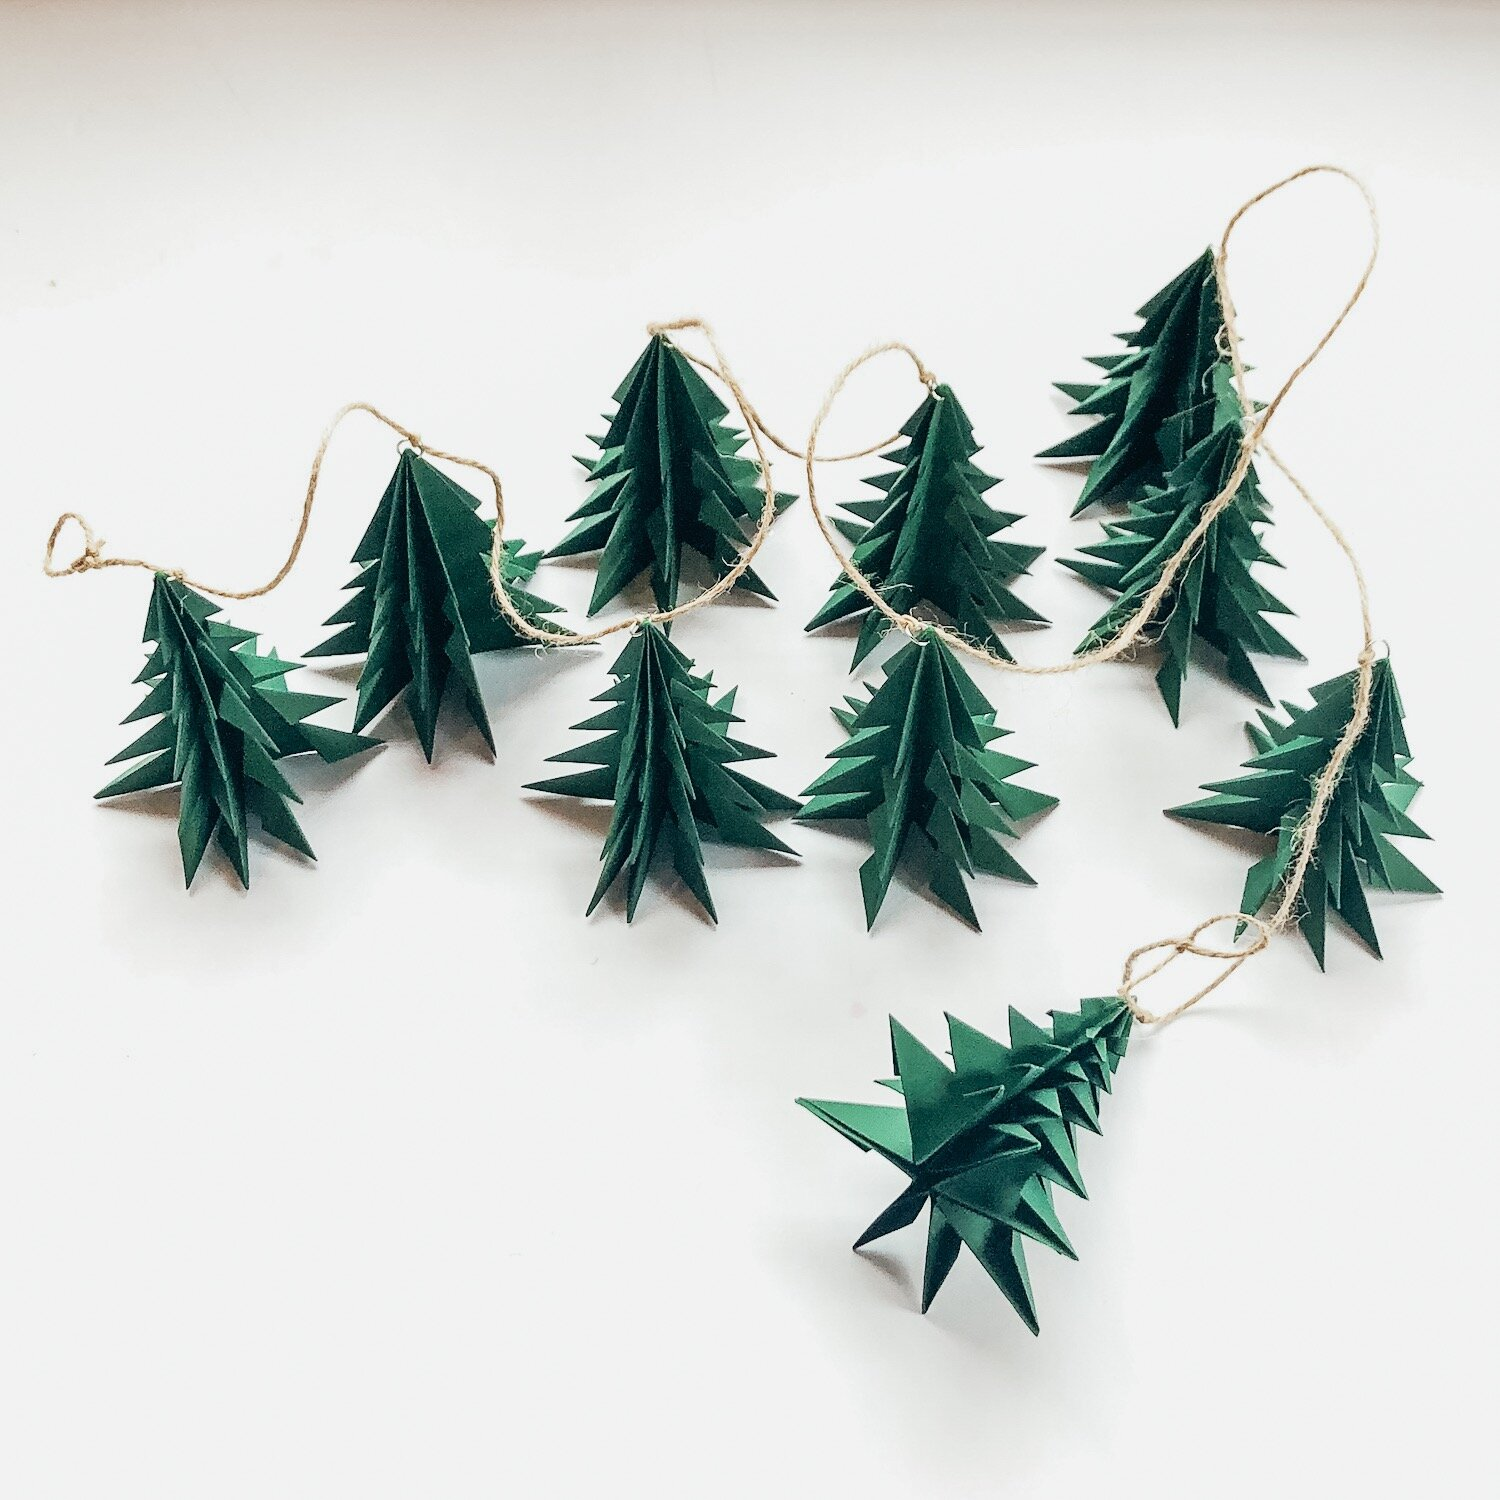 Christmas Tree Garland.December 18 Holiday Paper Tree Garland At Mj Loft Musejar